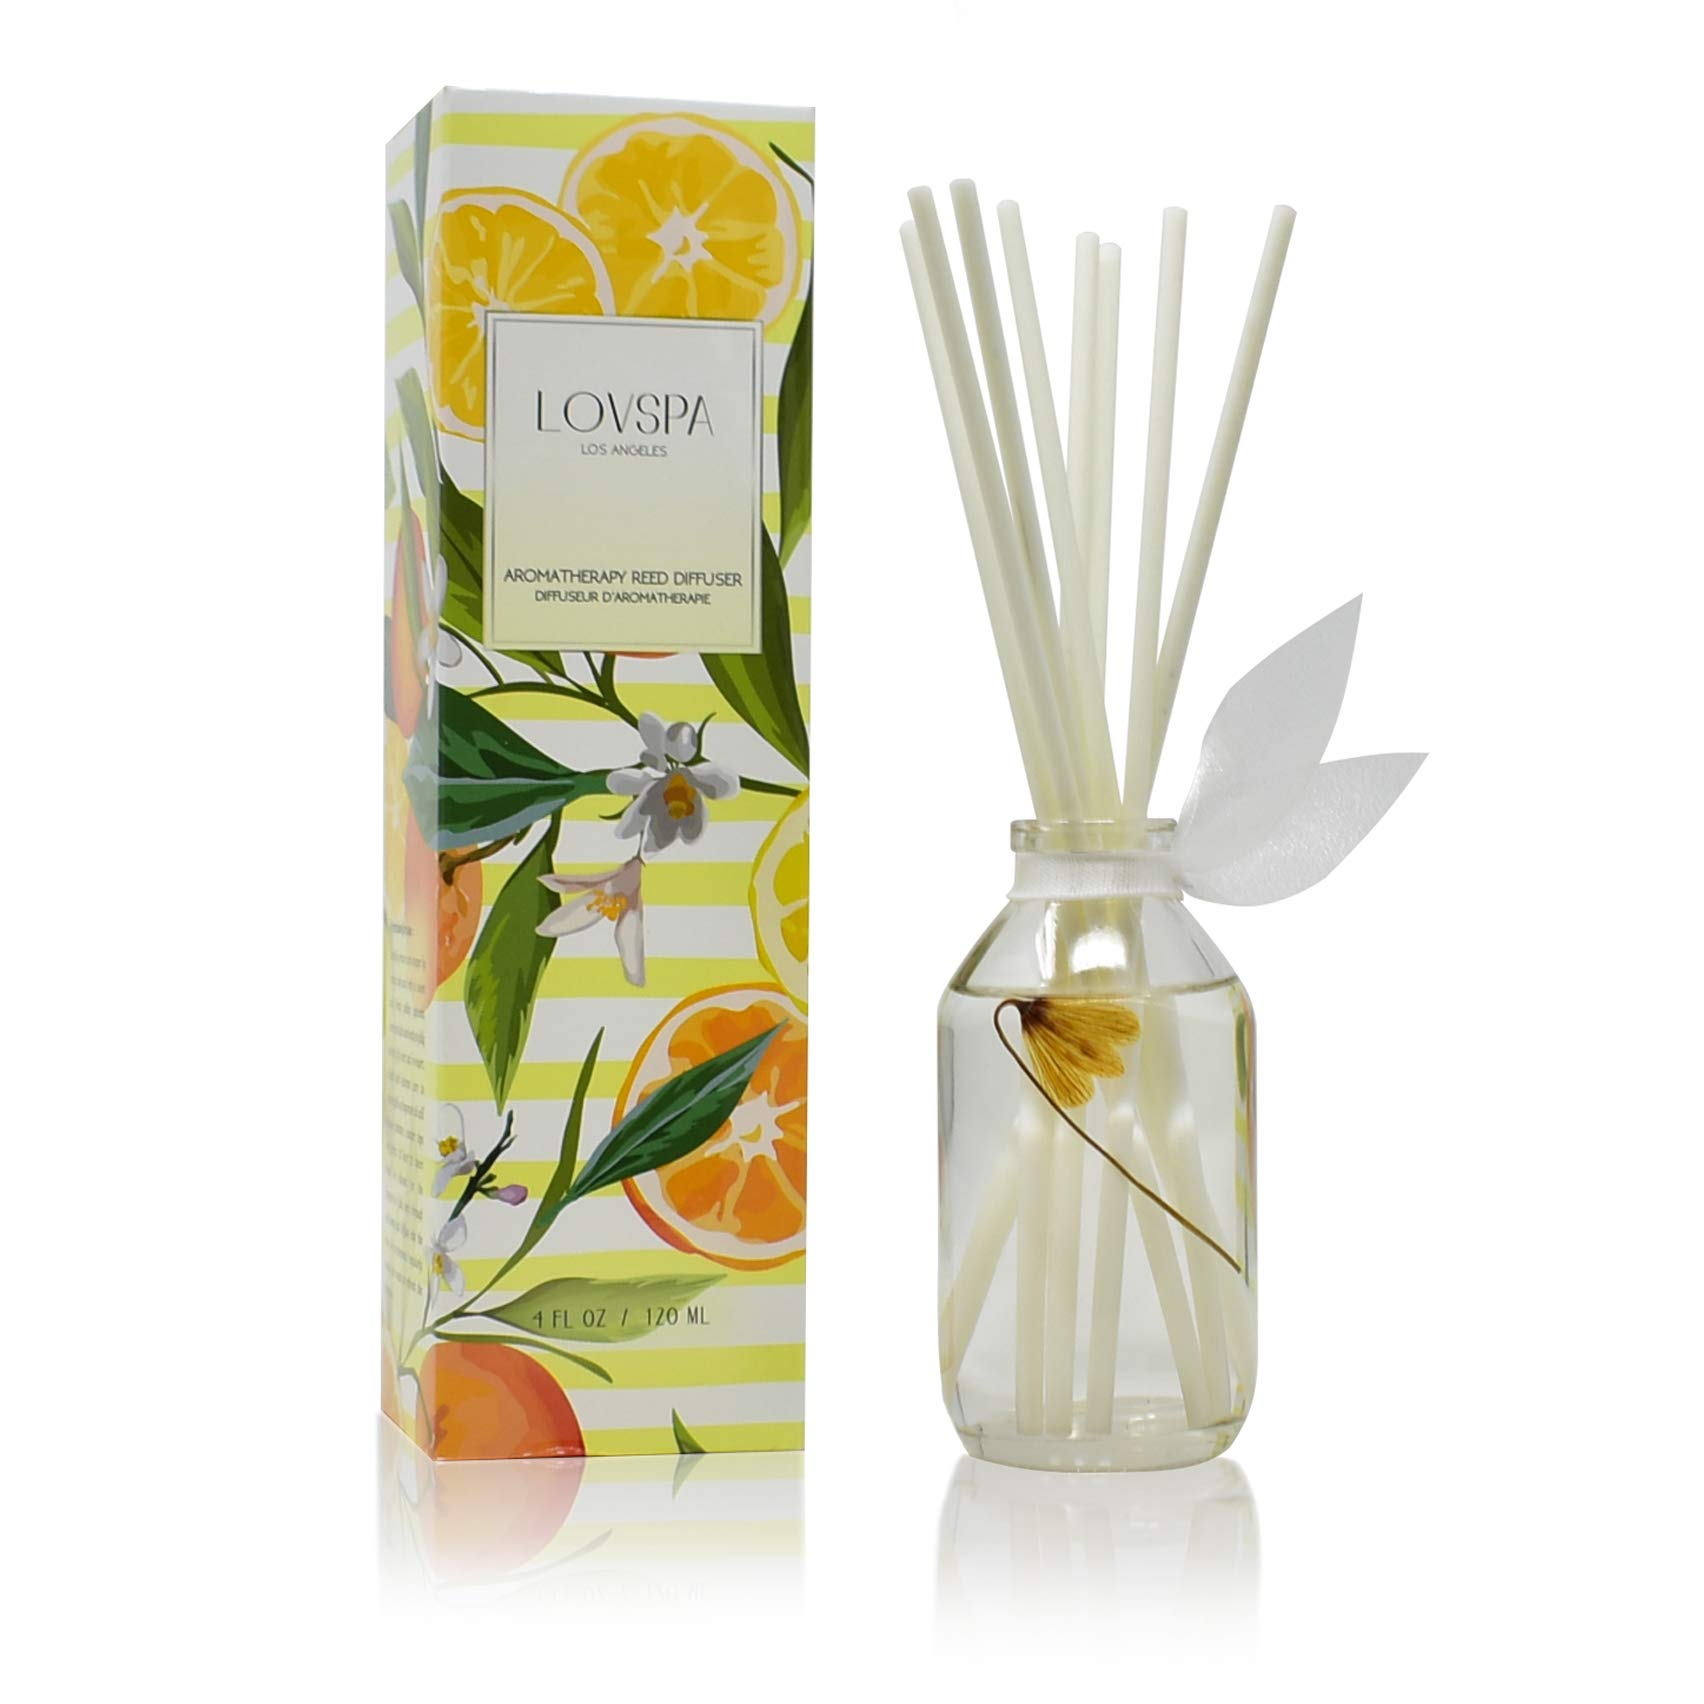 LOVSPA Coastal Citrus Scented Reed Diffuser Oil and Sticks Gift Set - Air Freshener for Bathroom, Bedroom Kitchen or Living Room - Best Housewarming Gift Idea for Women and Men - Made in The USA